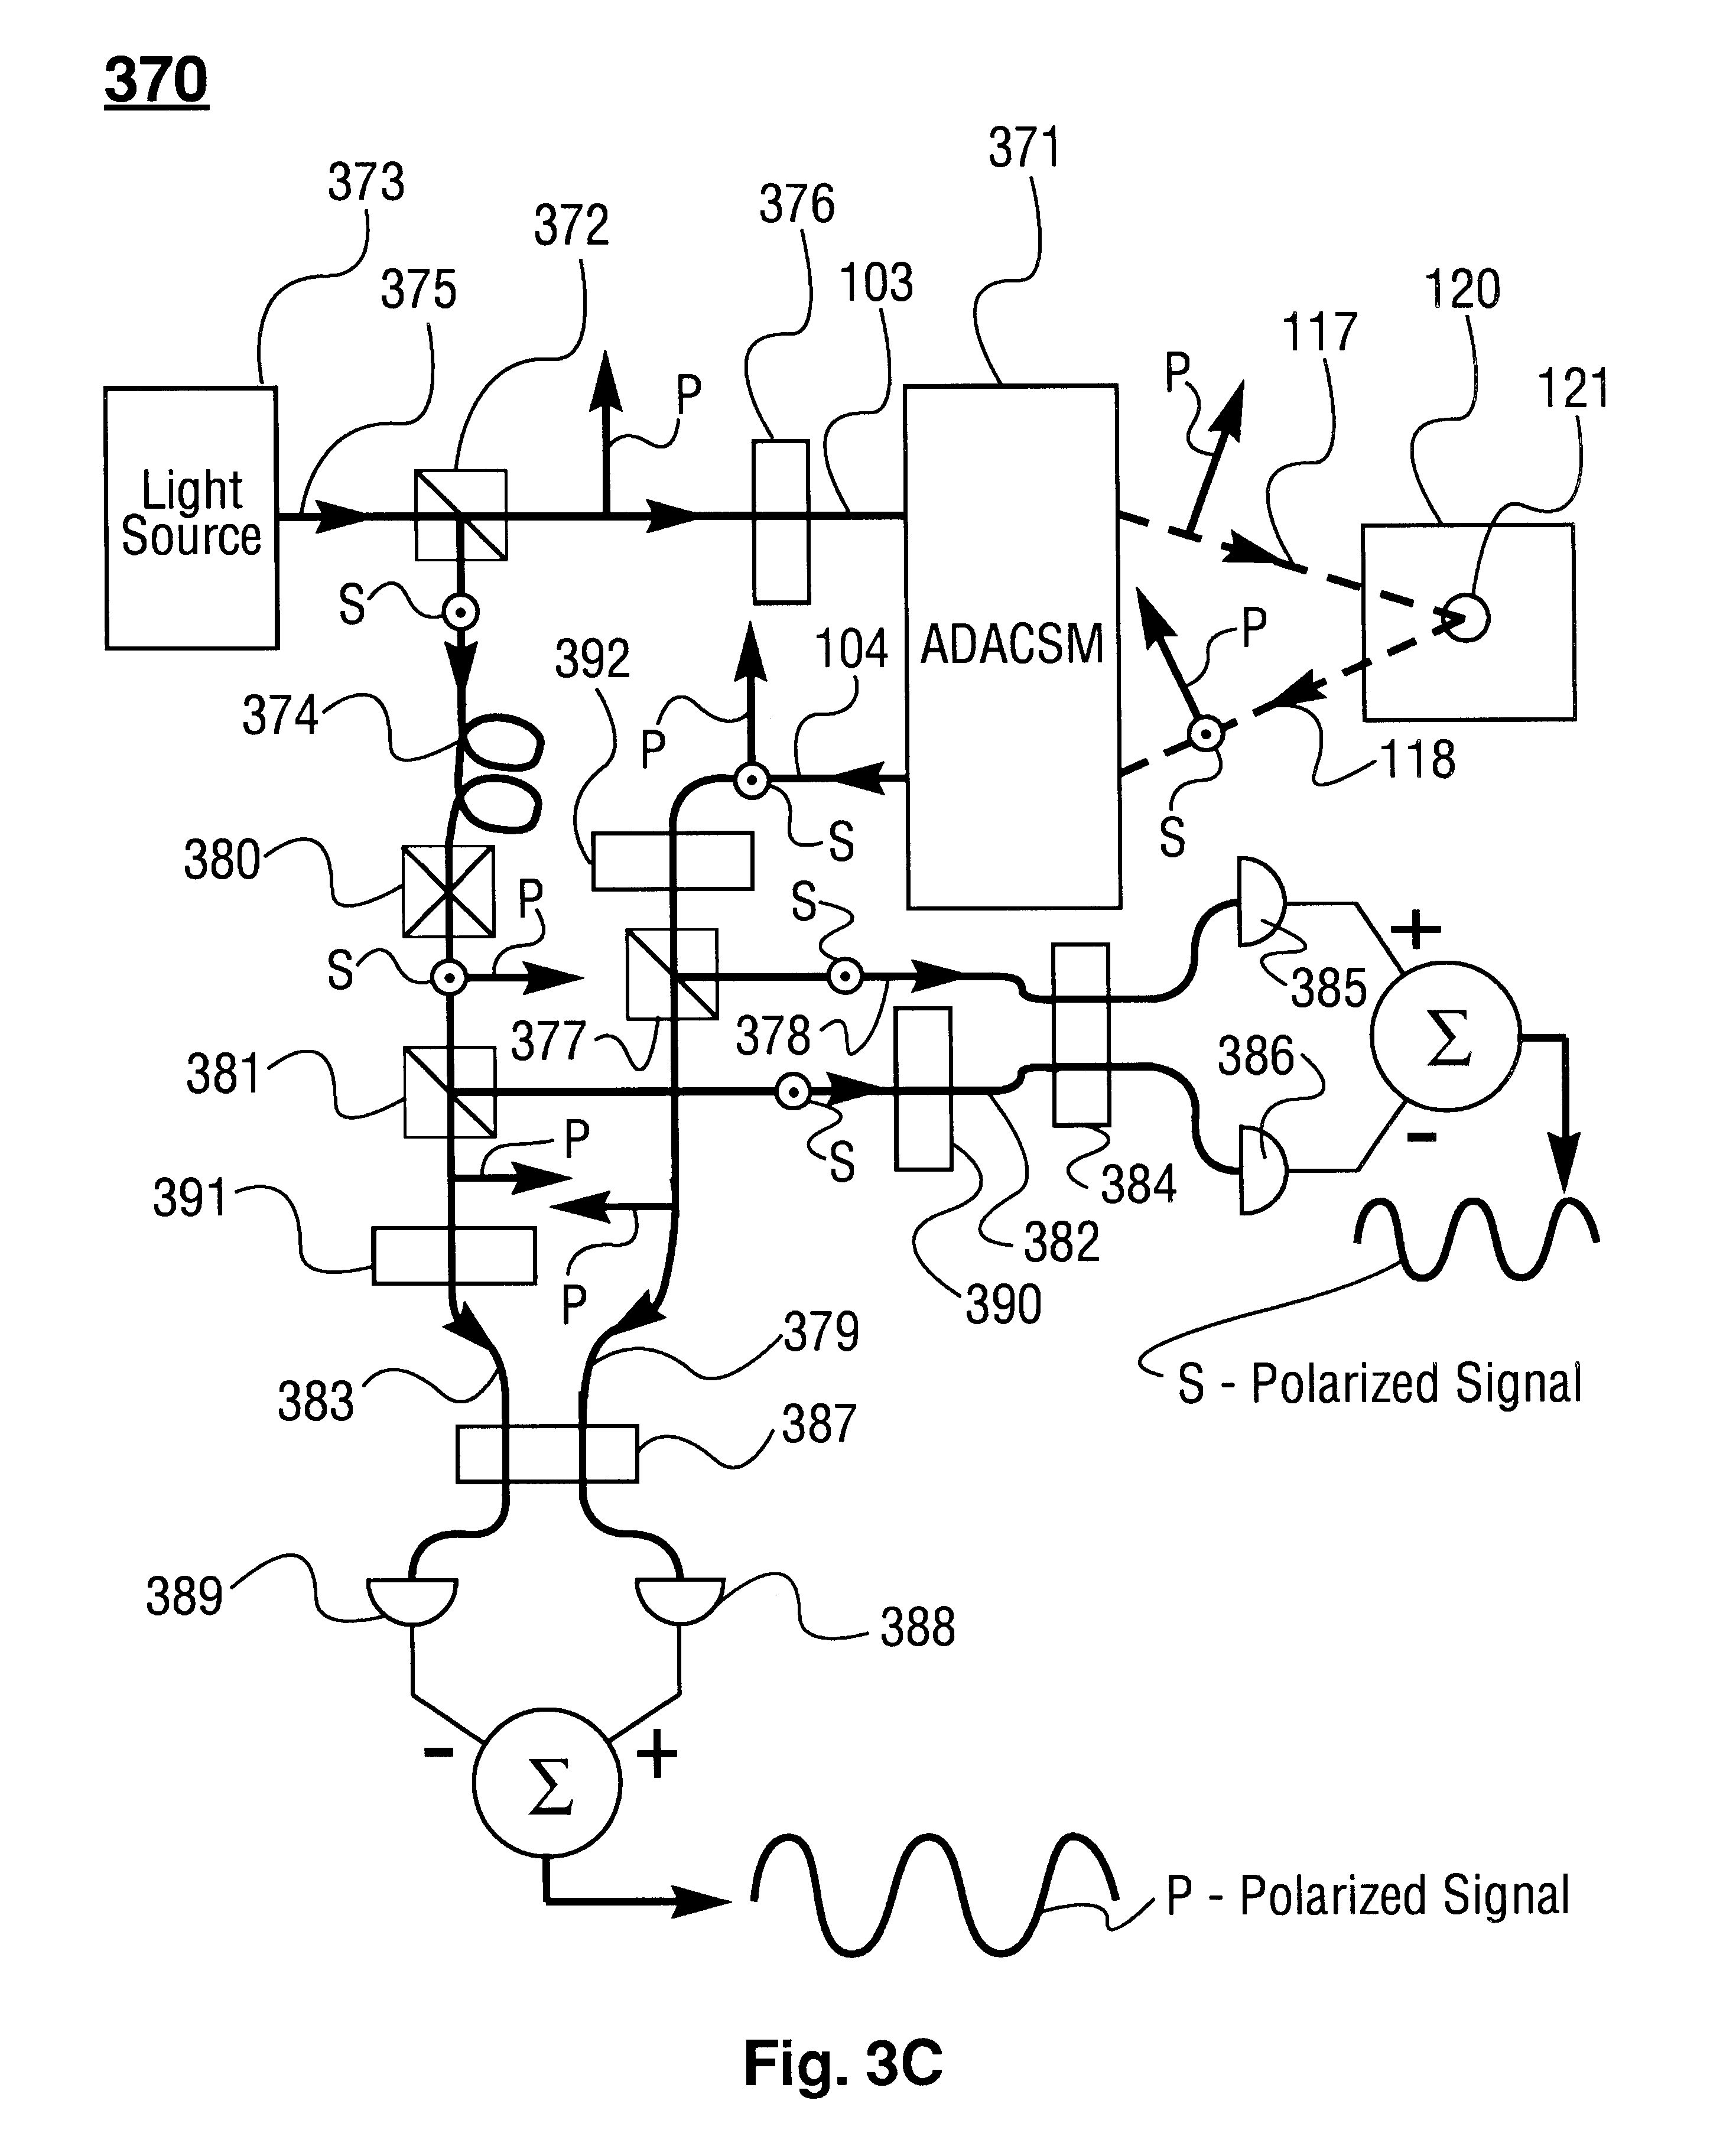 Animated D Line Drawings With Temporal Coherence : Patent us fiber coupled high speed angled dual